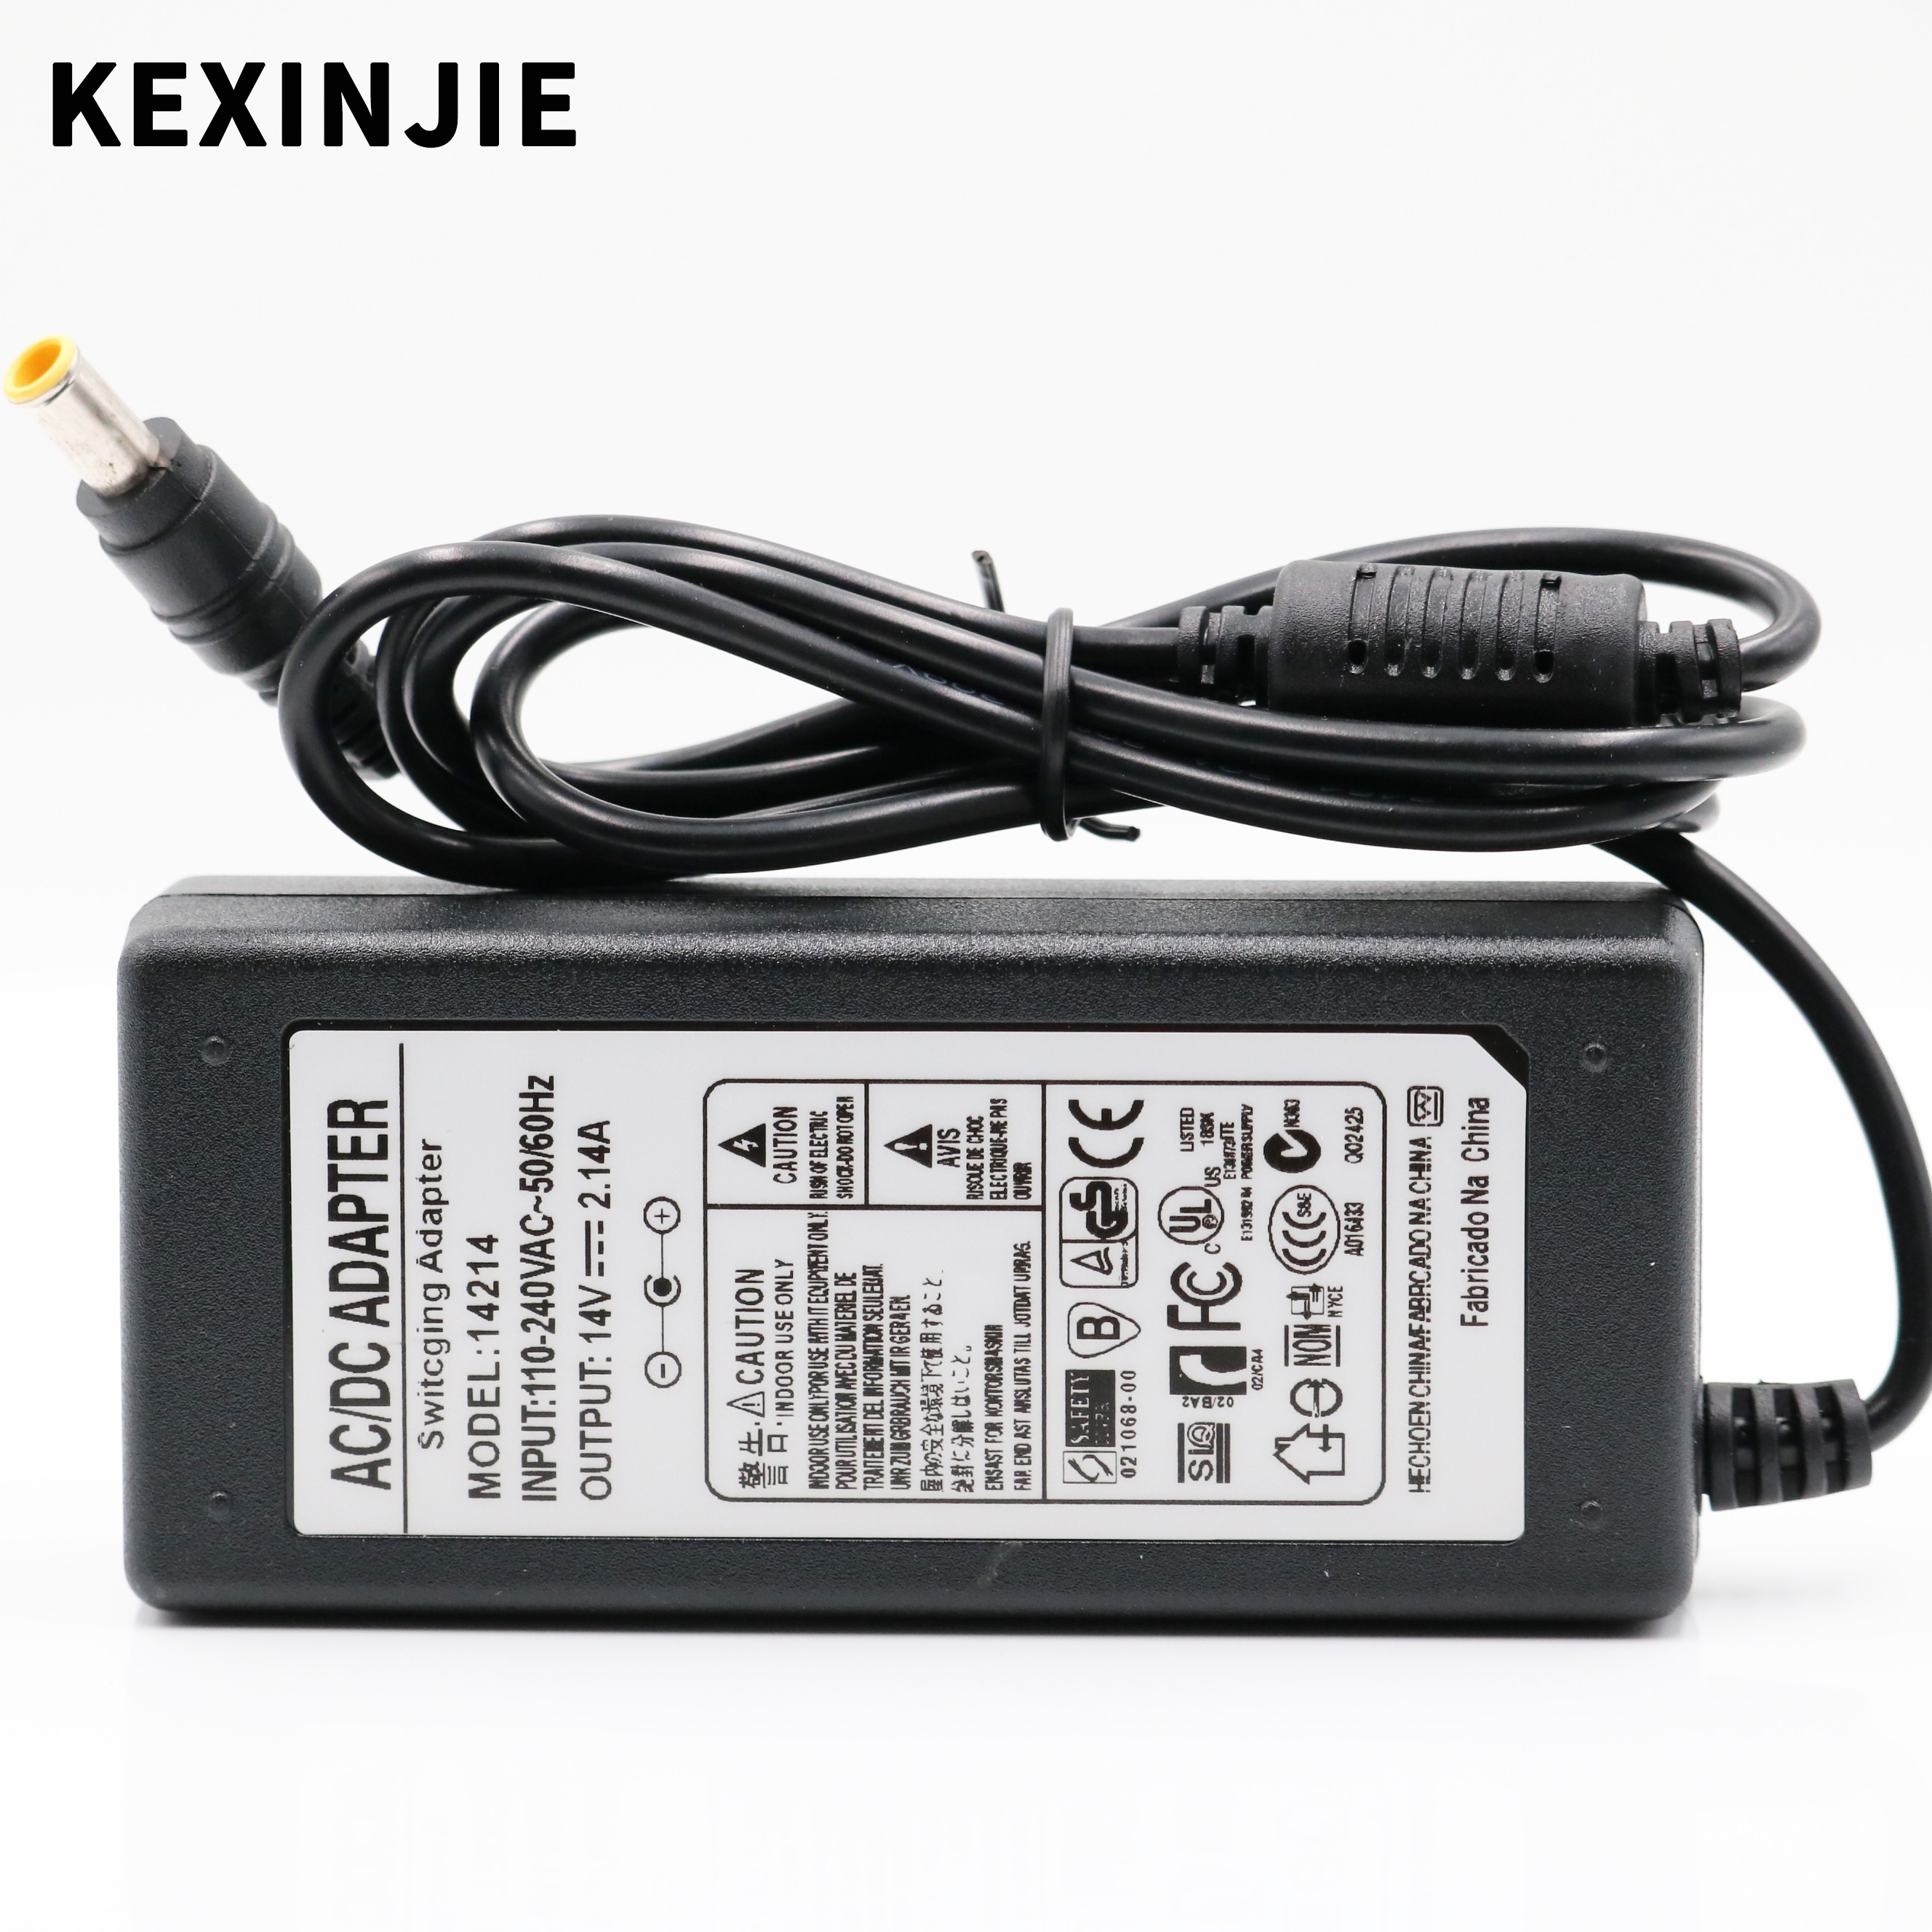 14V 2.14A AC DC Adapter Charger For Samsung Monitor S19B150N S19B360 14V2.14A S22B360HW ADM3014 Power Supply